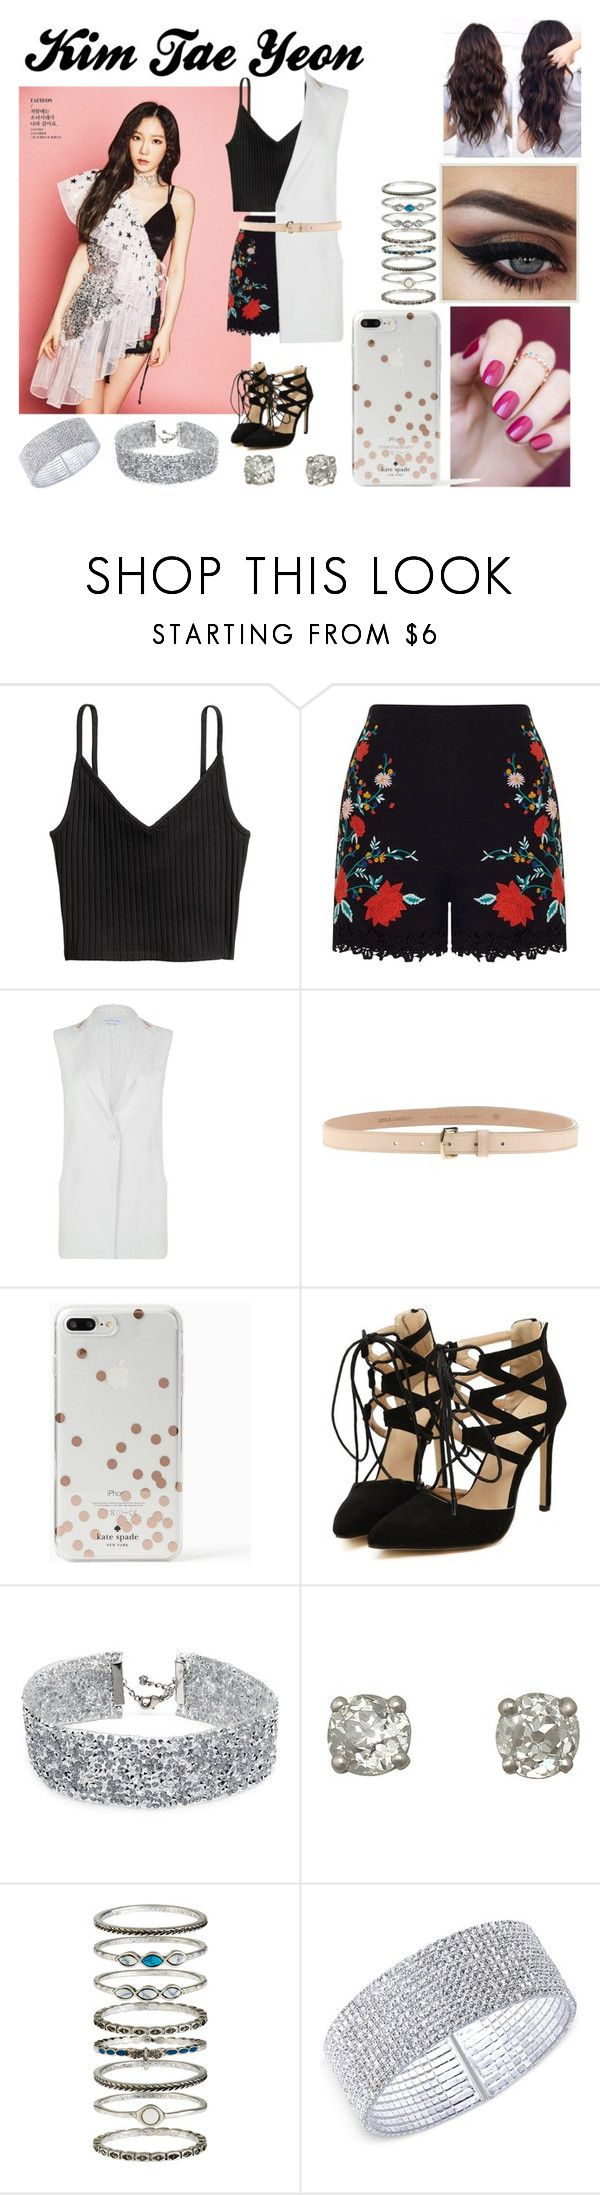 """""""Kim Tae Yeon"""" by ohmy-fangirl on Polyvore featuring Nuevo, H&M, Miss Selfridge, Patrizia Pepe, Dsquared2, Kate Spade, DANNIJO, Accessorize and Anne Klein"""